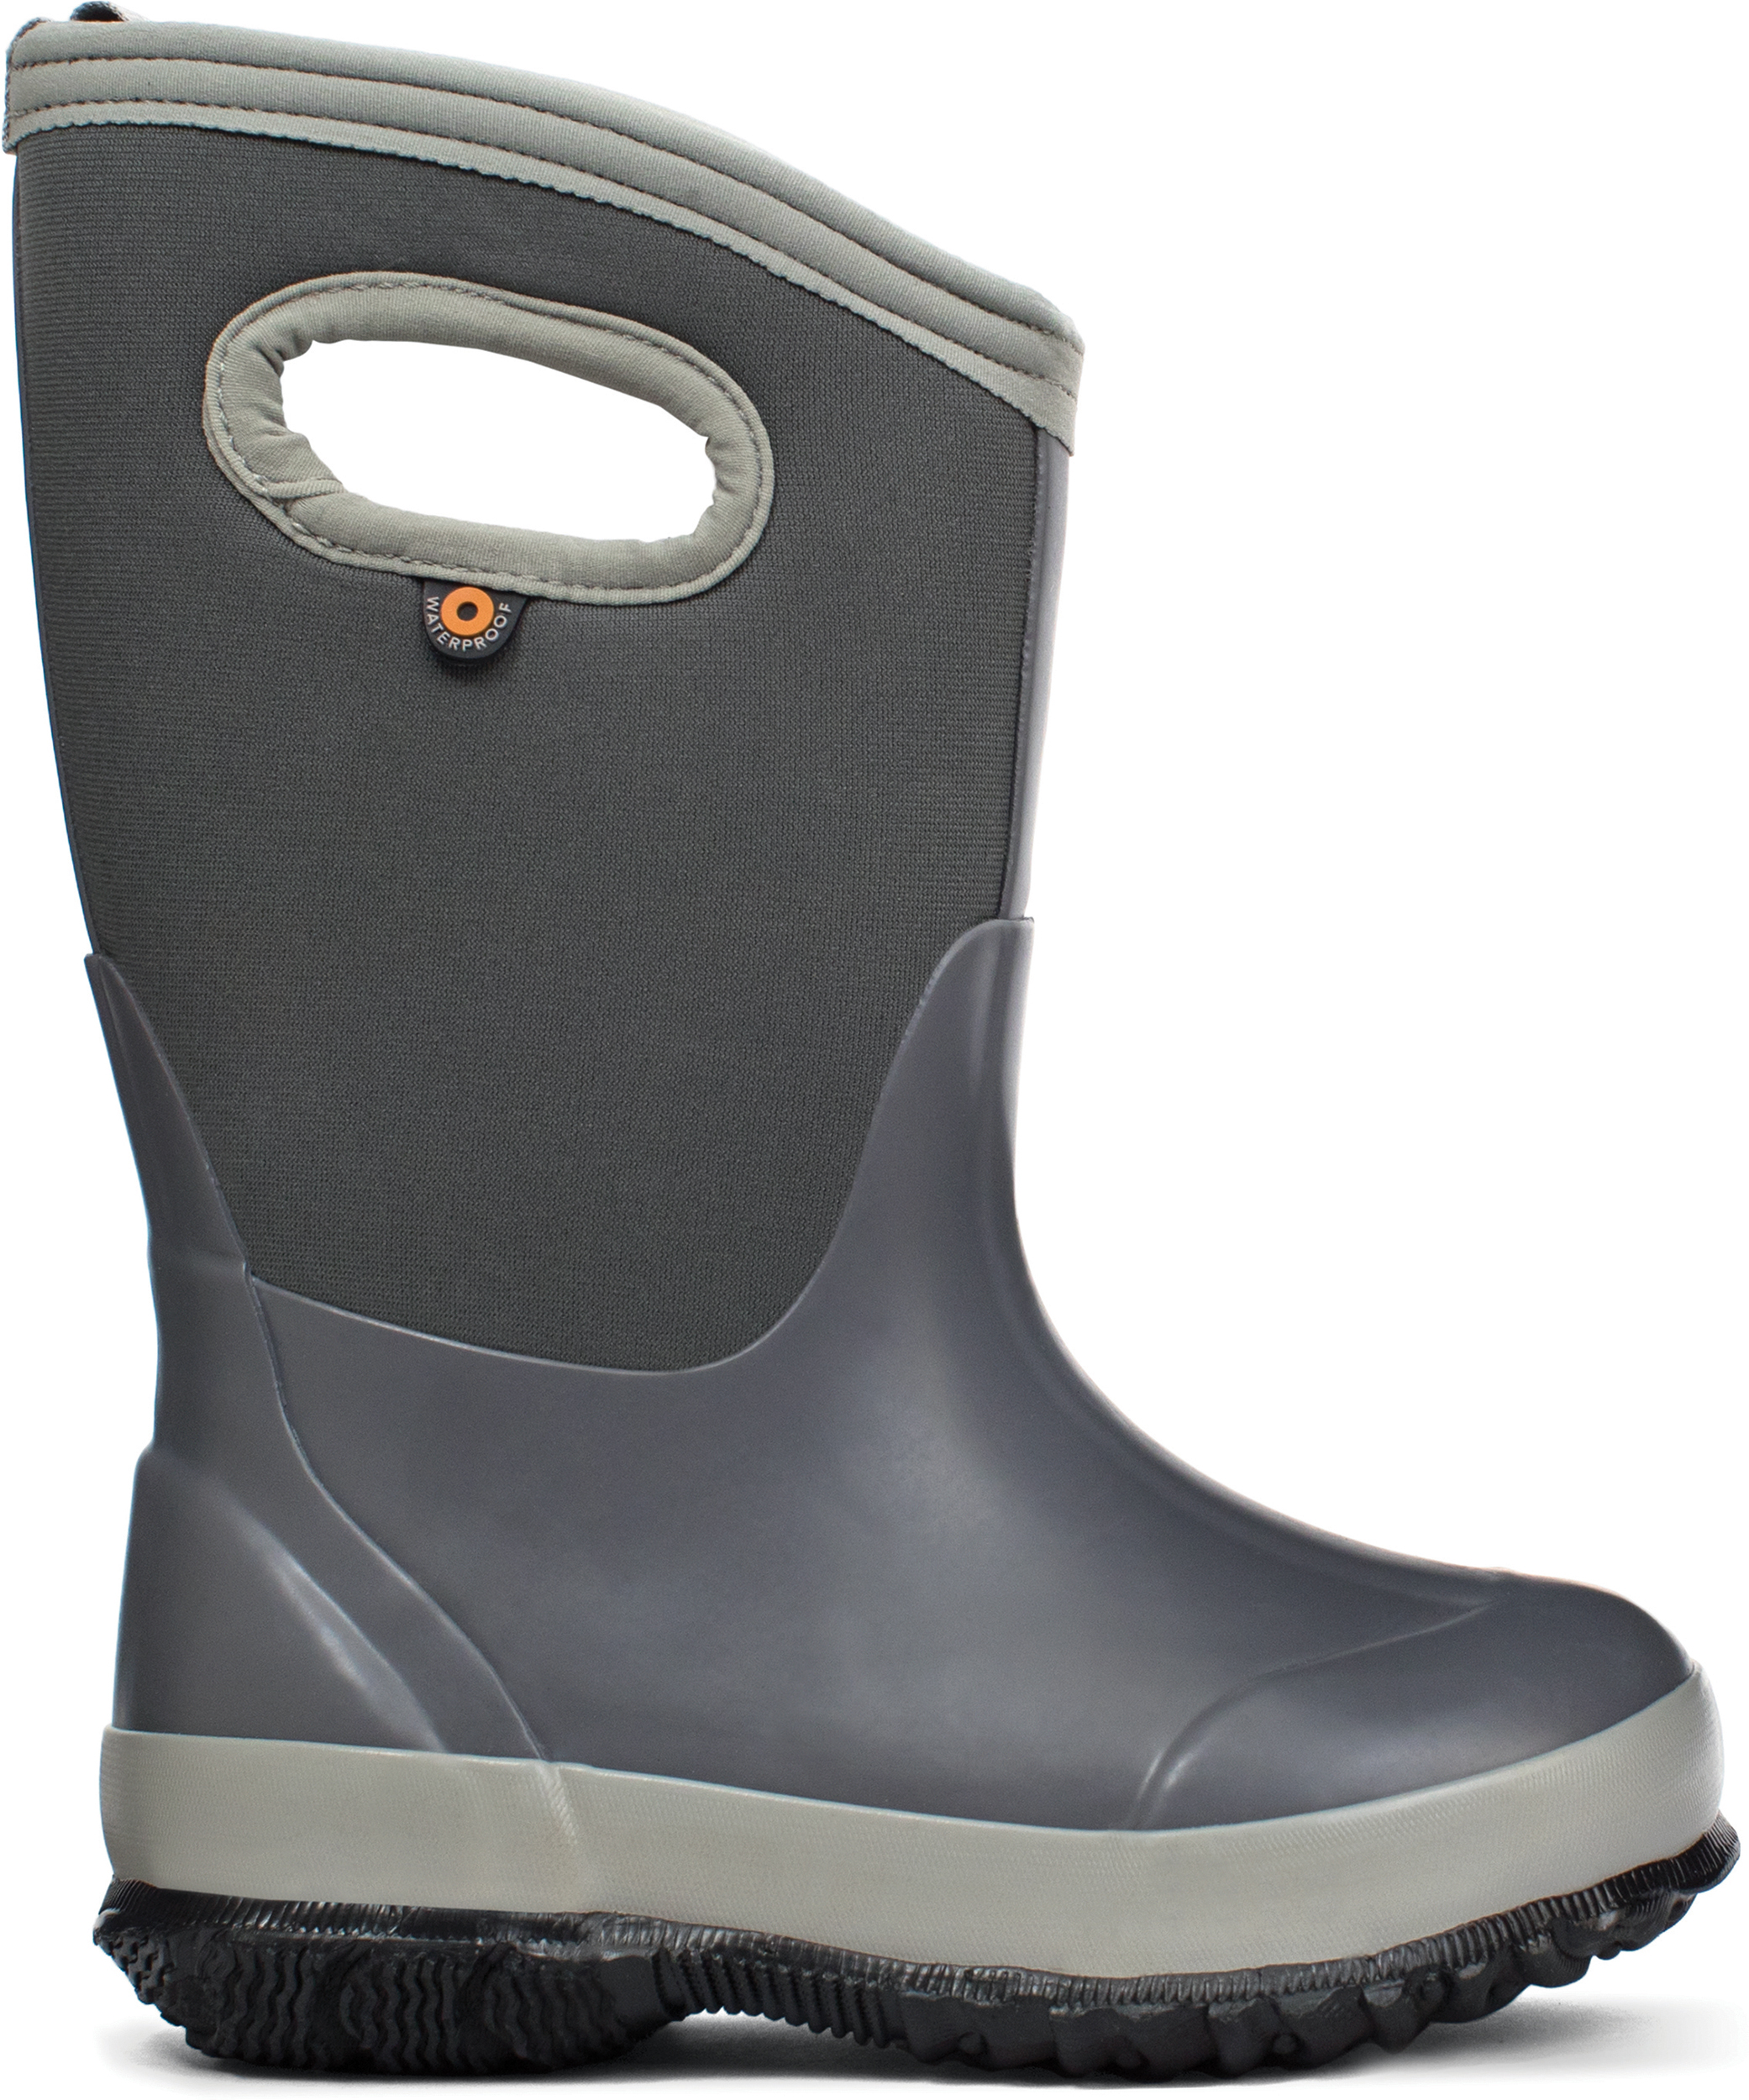 609c12c3e Bogs Classic Waterproof Insulated Boots - Children to Youths | MEC